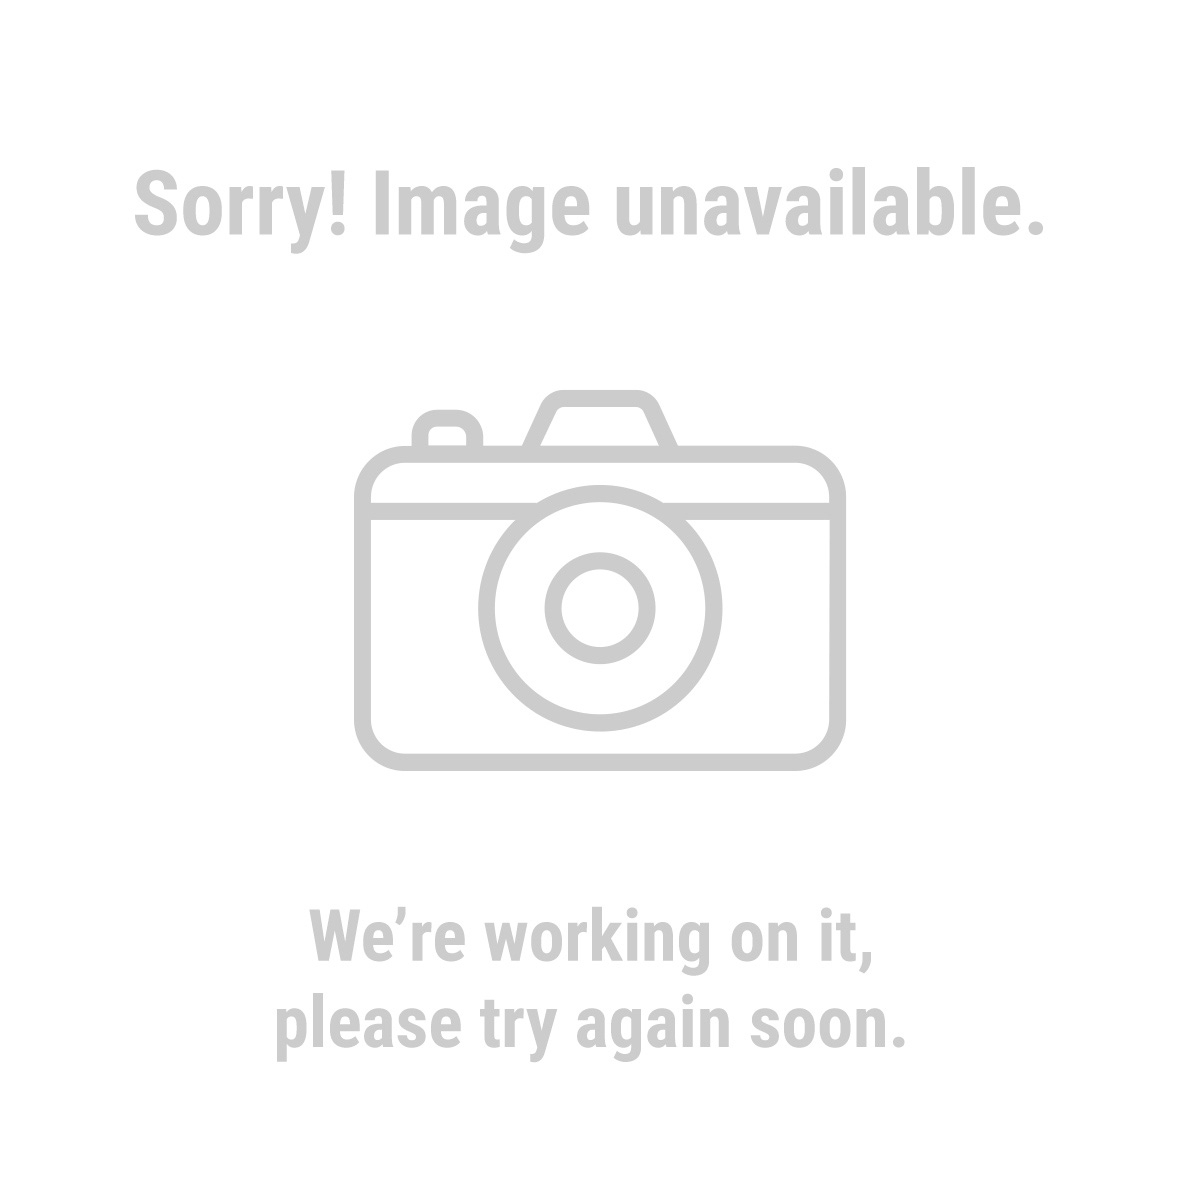 Central-Forge 61163 5 in. Multi-Purpose Vise